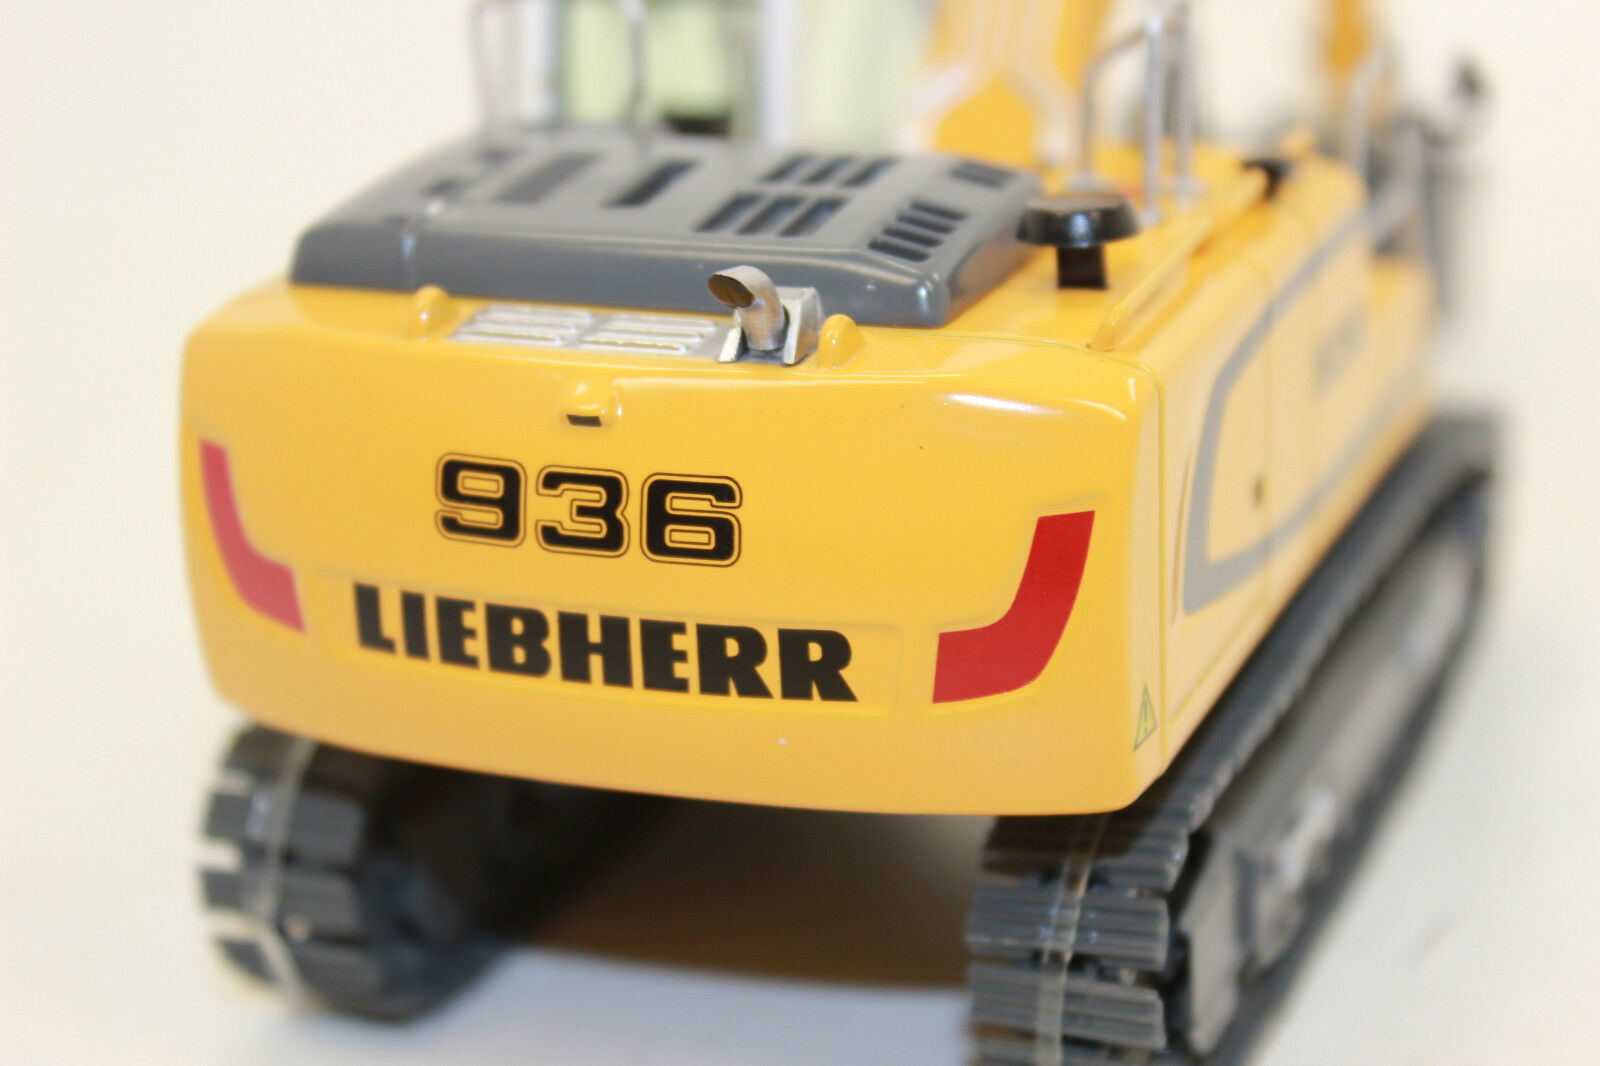 Nzg 957 Liebherr R 936 Crawler Excavator Animal IV 1 50 New Boxed